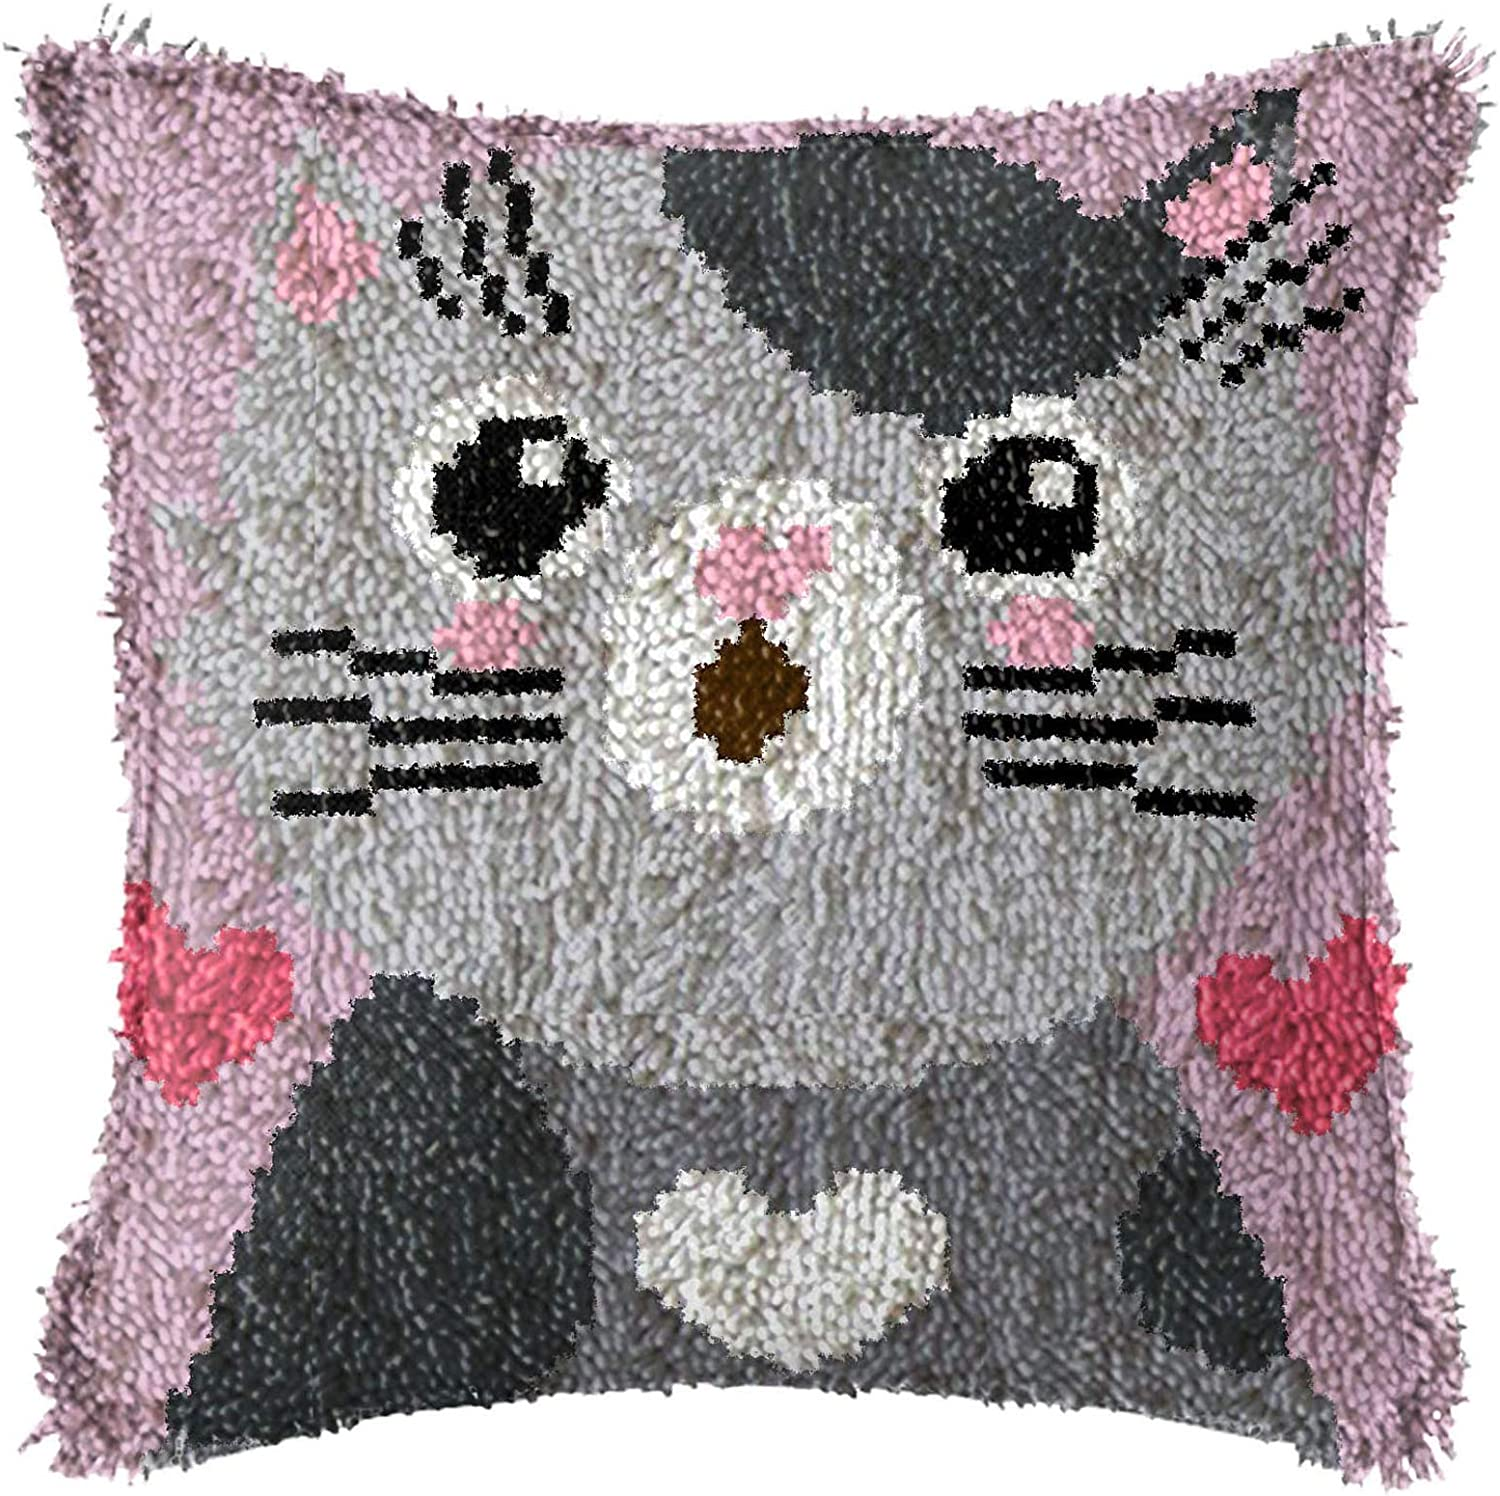 ,A 17 * 17In for Kids Adults Gift 43 * 43Cm DIY Latch Hook Kits Throw Pillow Cover Rug Making Kits Latch Hook with Colorful Animals Pattern Printed